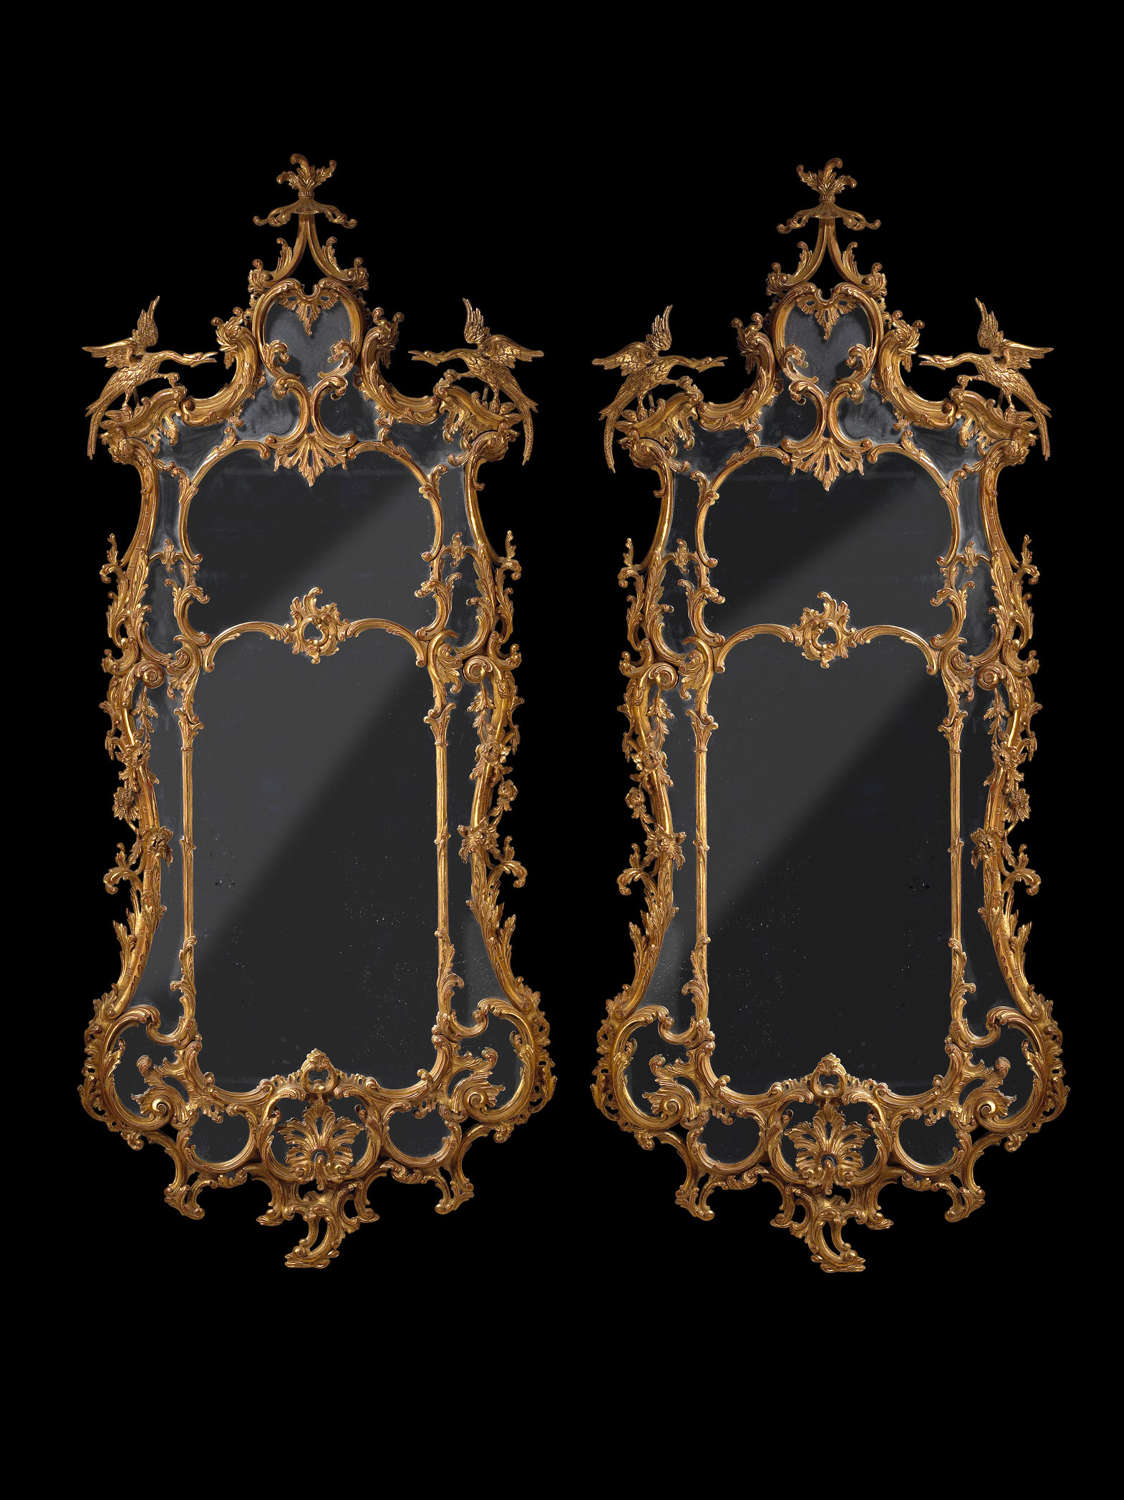 A pair of George 111 Carved Giltwood Mirrors . circa 1760irrors